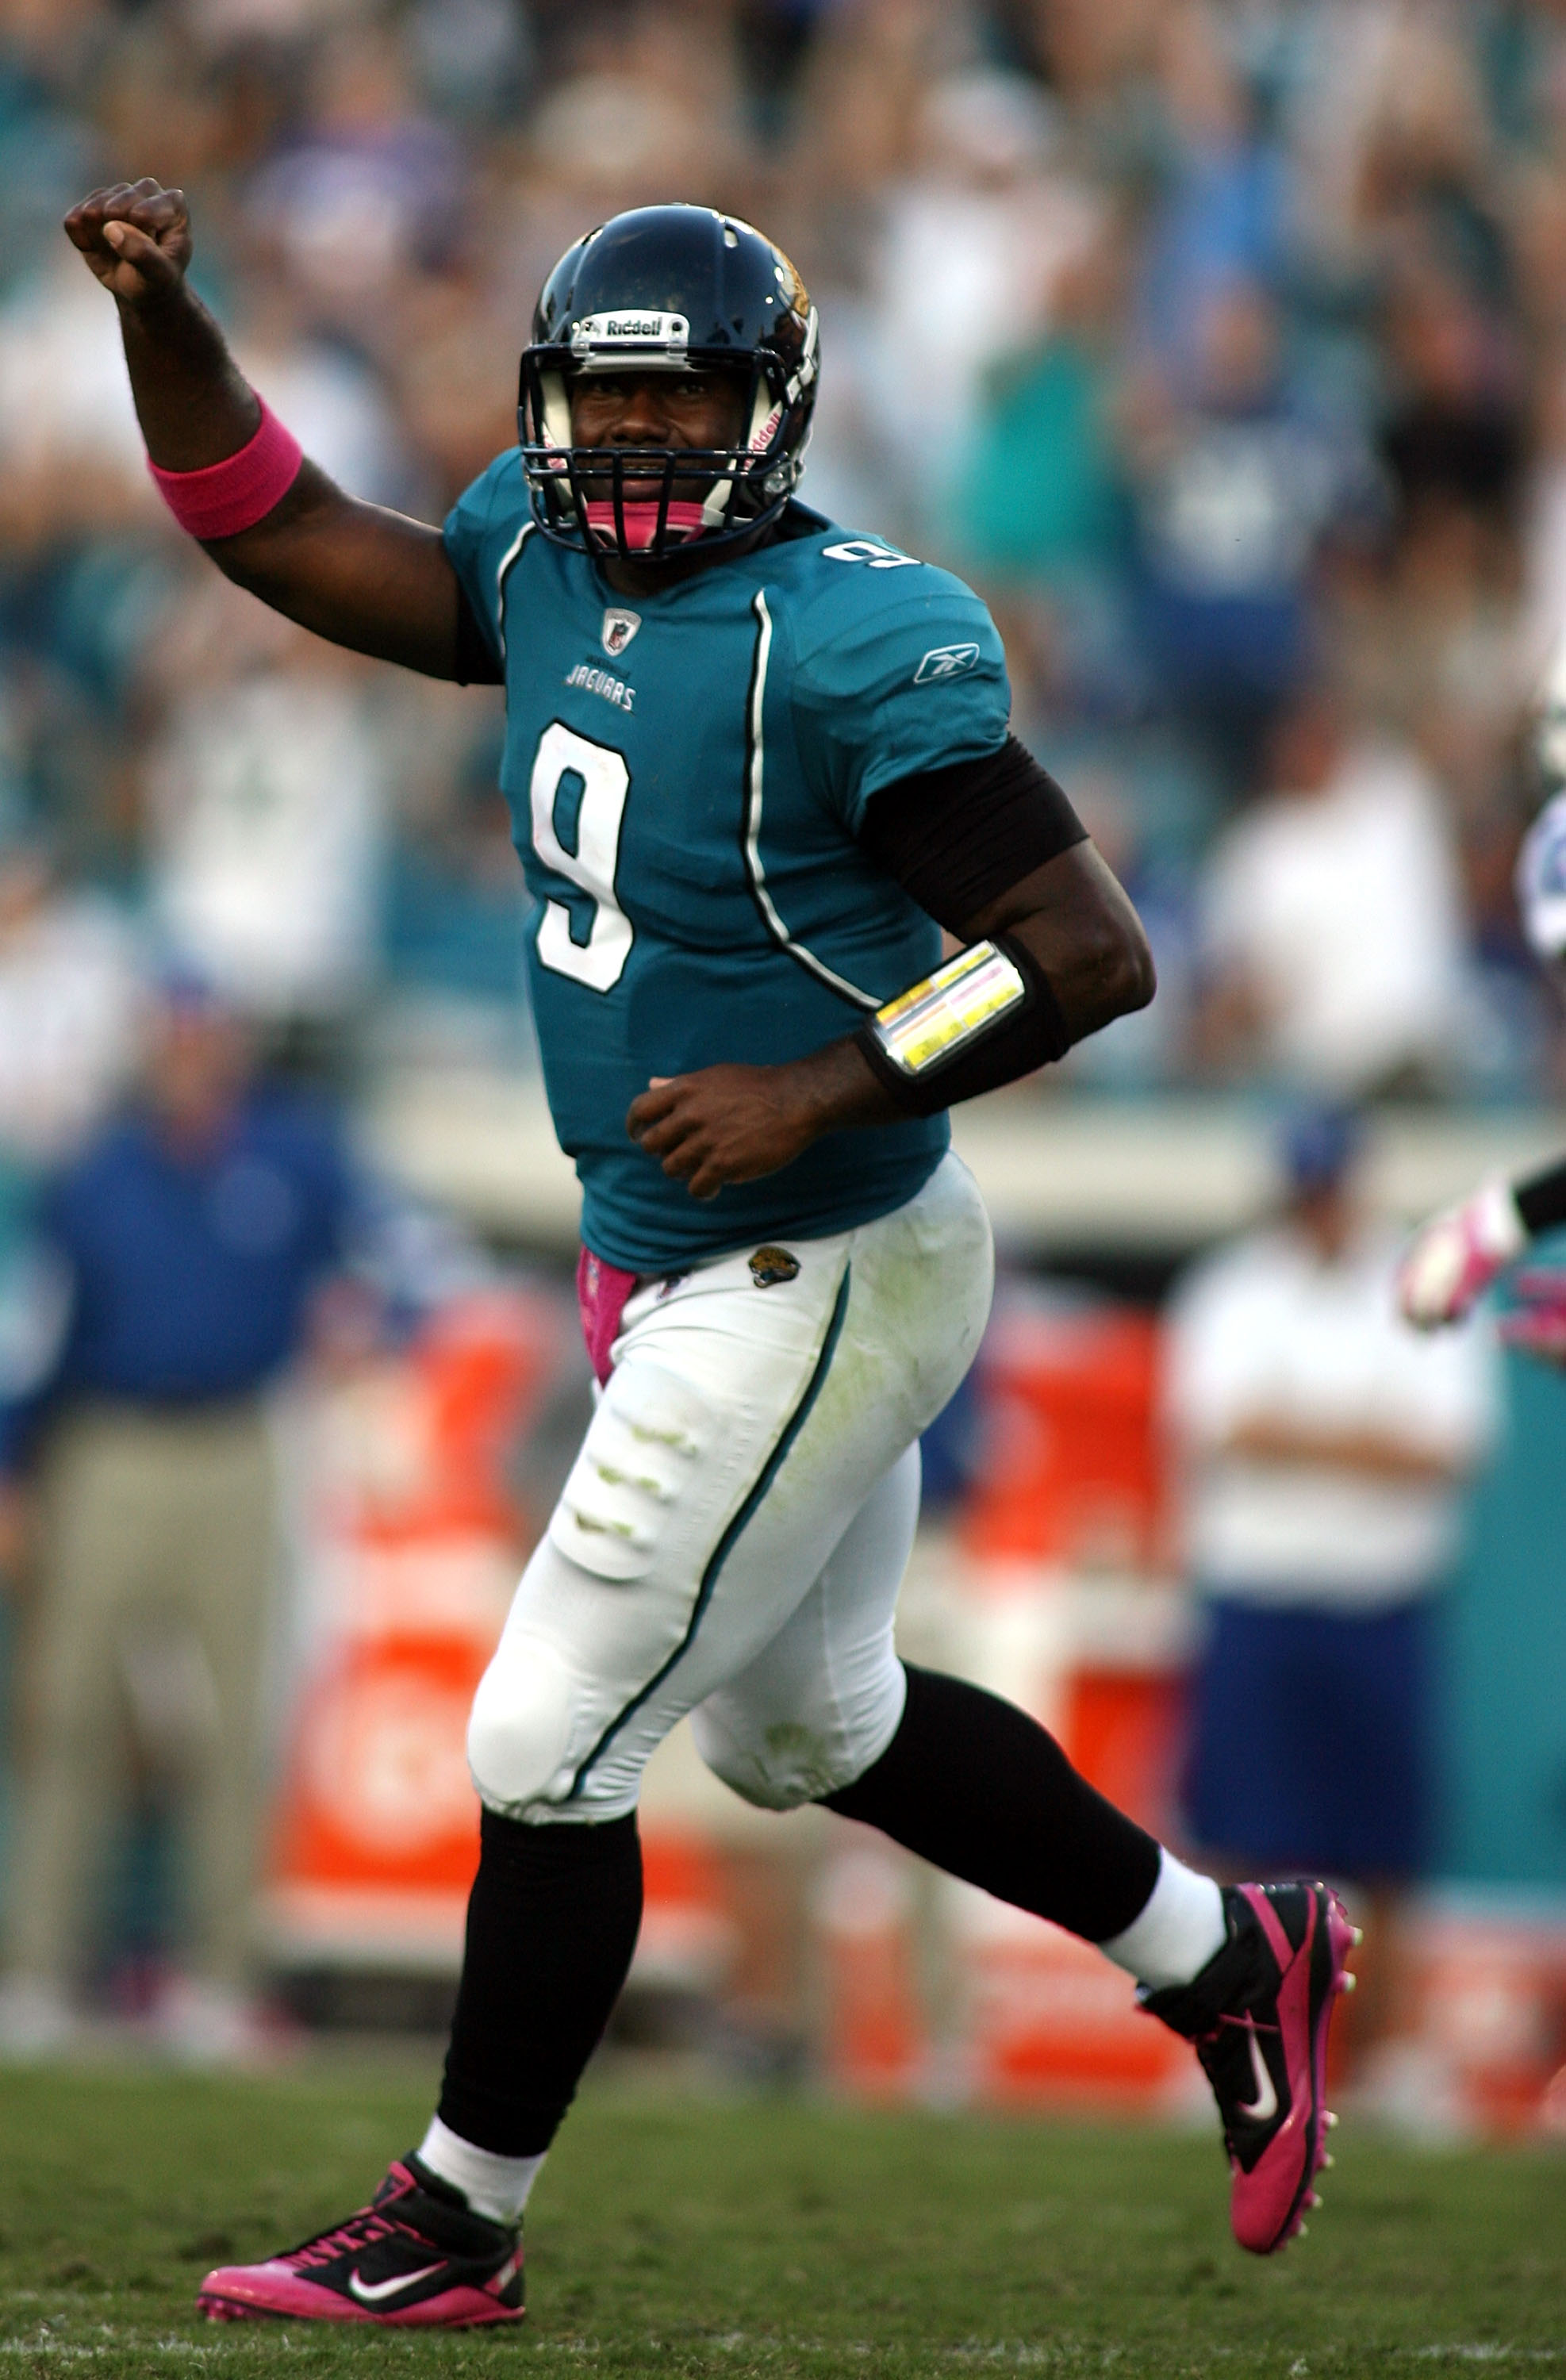 JACKSONVILLE, FL - OCTOBER 03:  Quarterback David Garrard #9 of the Jacksonville Jaguars celebrates the go ahead touchdown against the Indianapolis Colts at EverBank Field on October 3, 2010 in Jacksonville, Florida.  (Photo by Marc Serota/Getty Images)